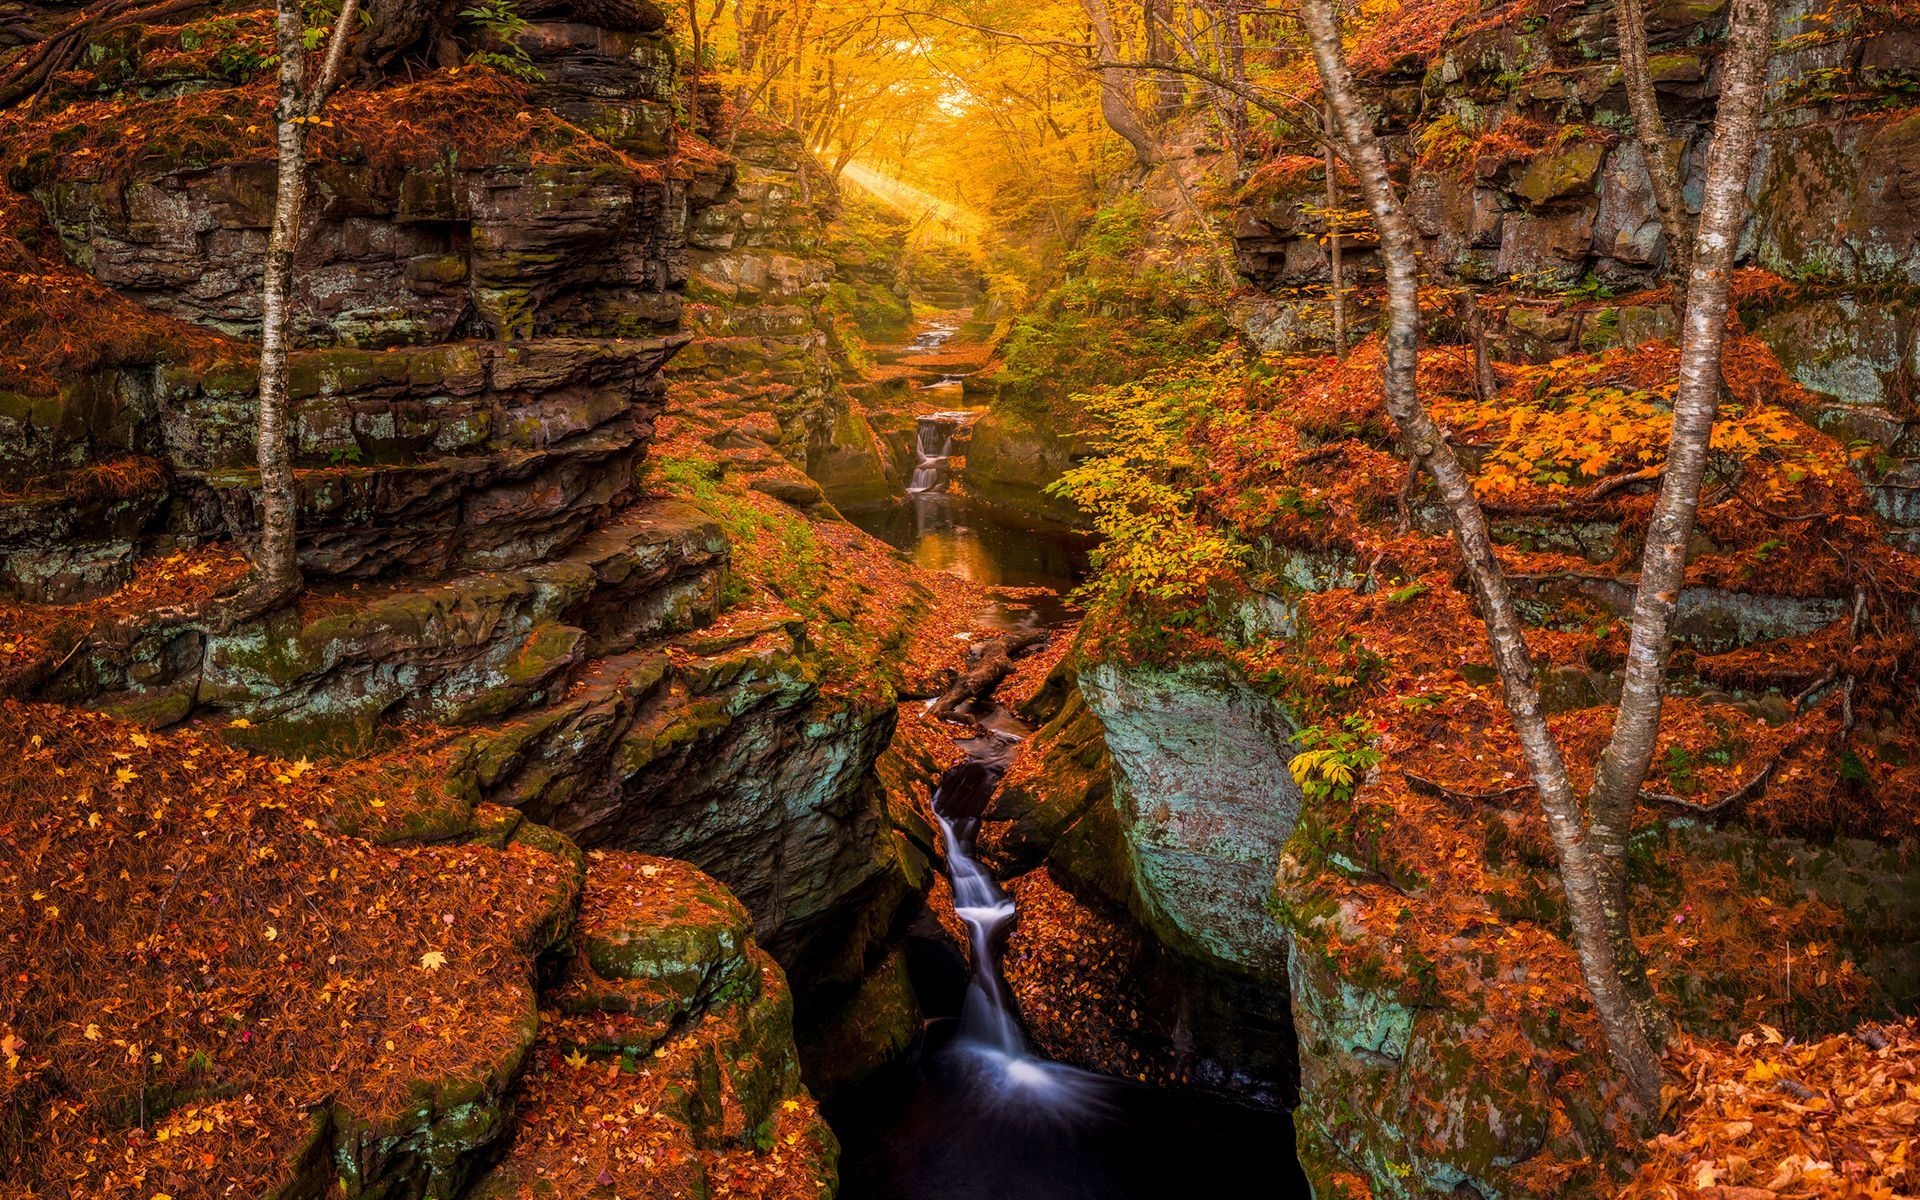 Hd Wallpaper Fall Leaf Change Stream And Waterfall In Rocky Autumn Forest Hd Wallpaper